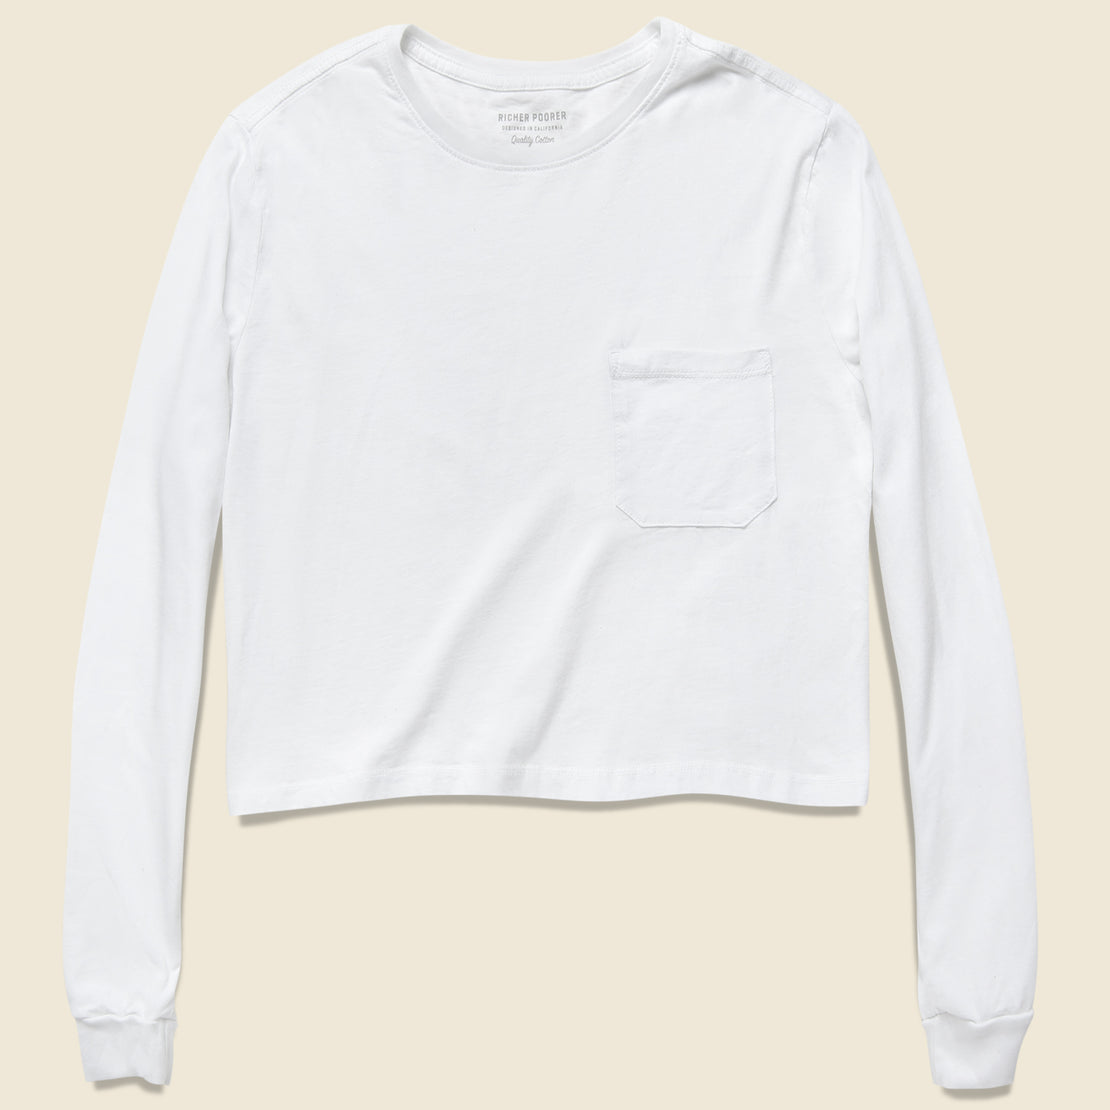 Richer Poorer Long Sleeve Cropped Tee - White